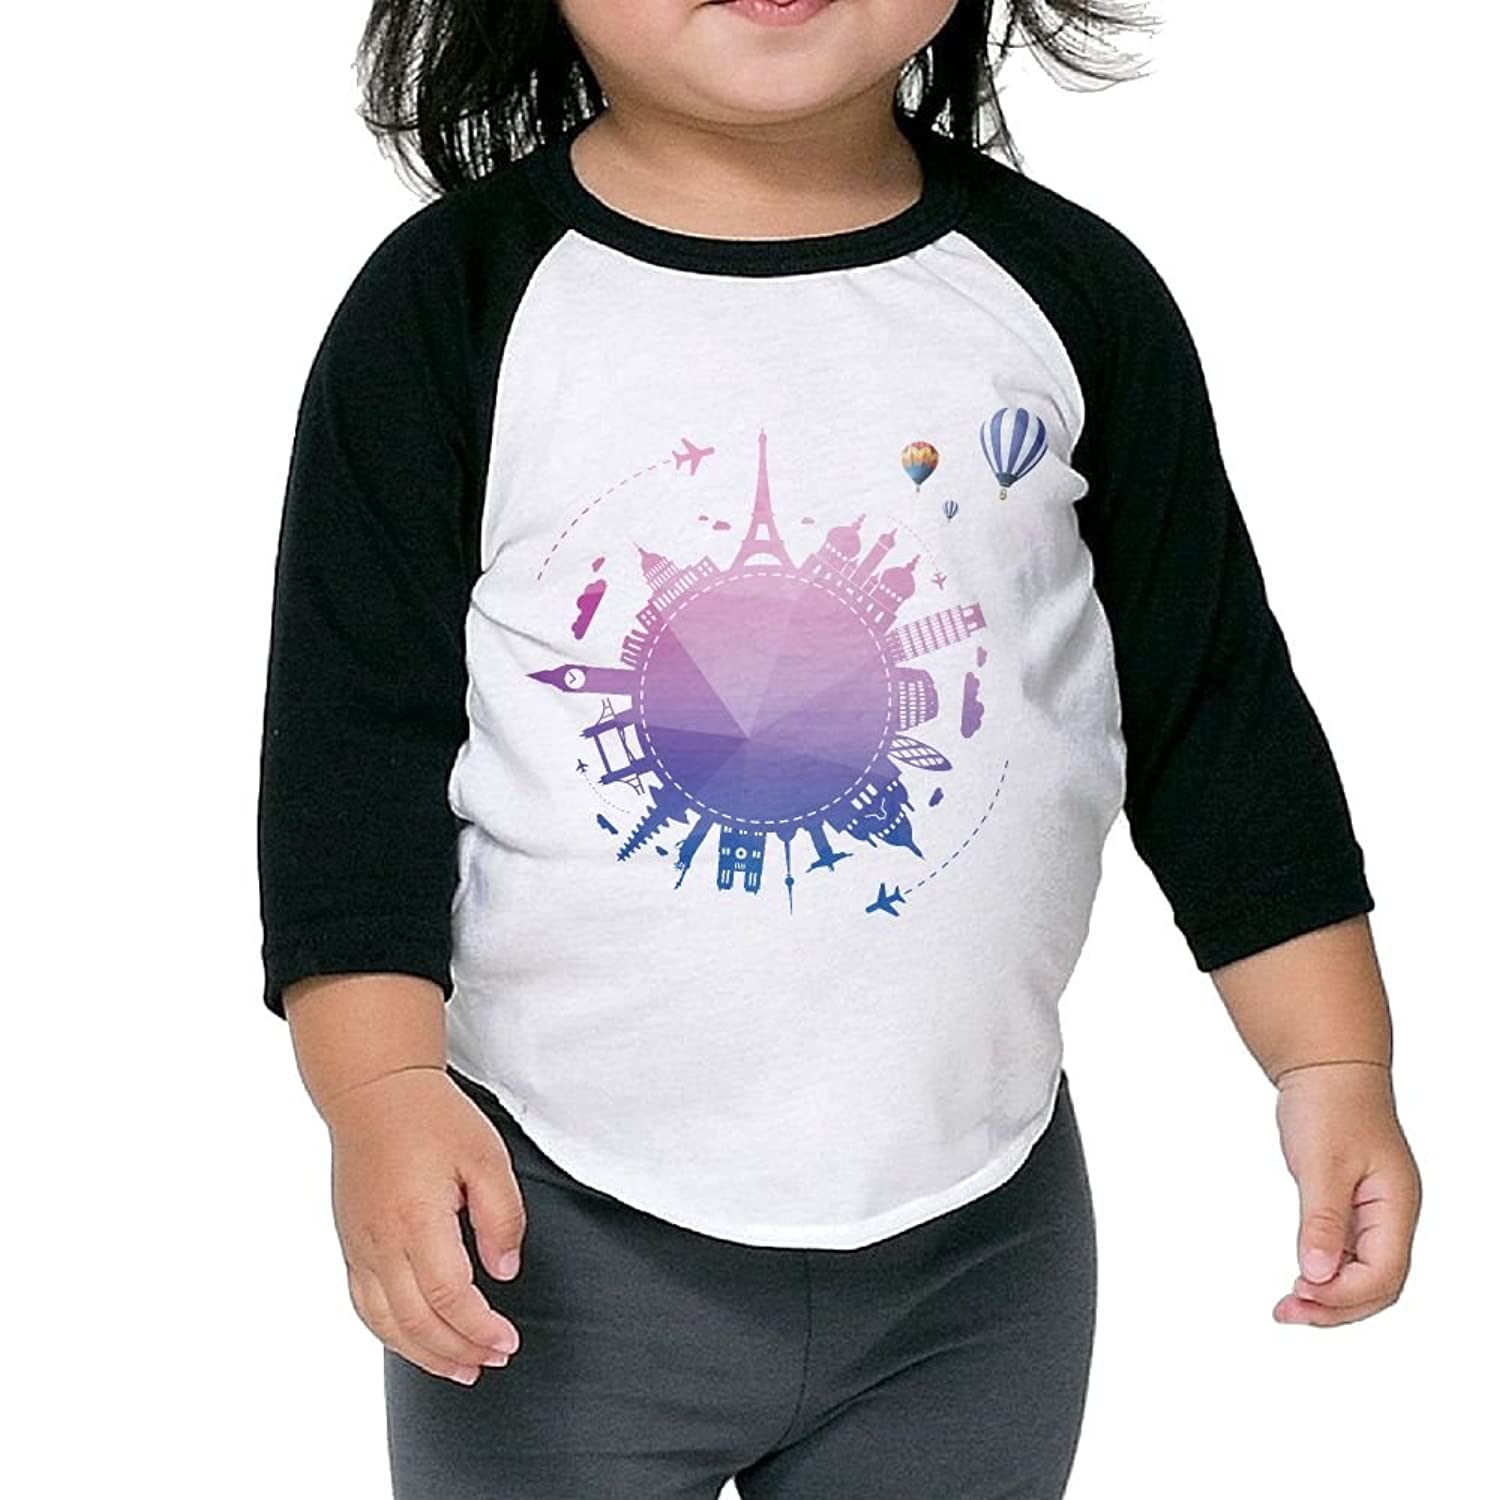 New CHENLY Unisex Kid's Sleeves Soft Round City Cotton 3/4 Sleeves T-Shirt For Kids